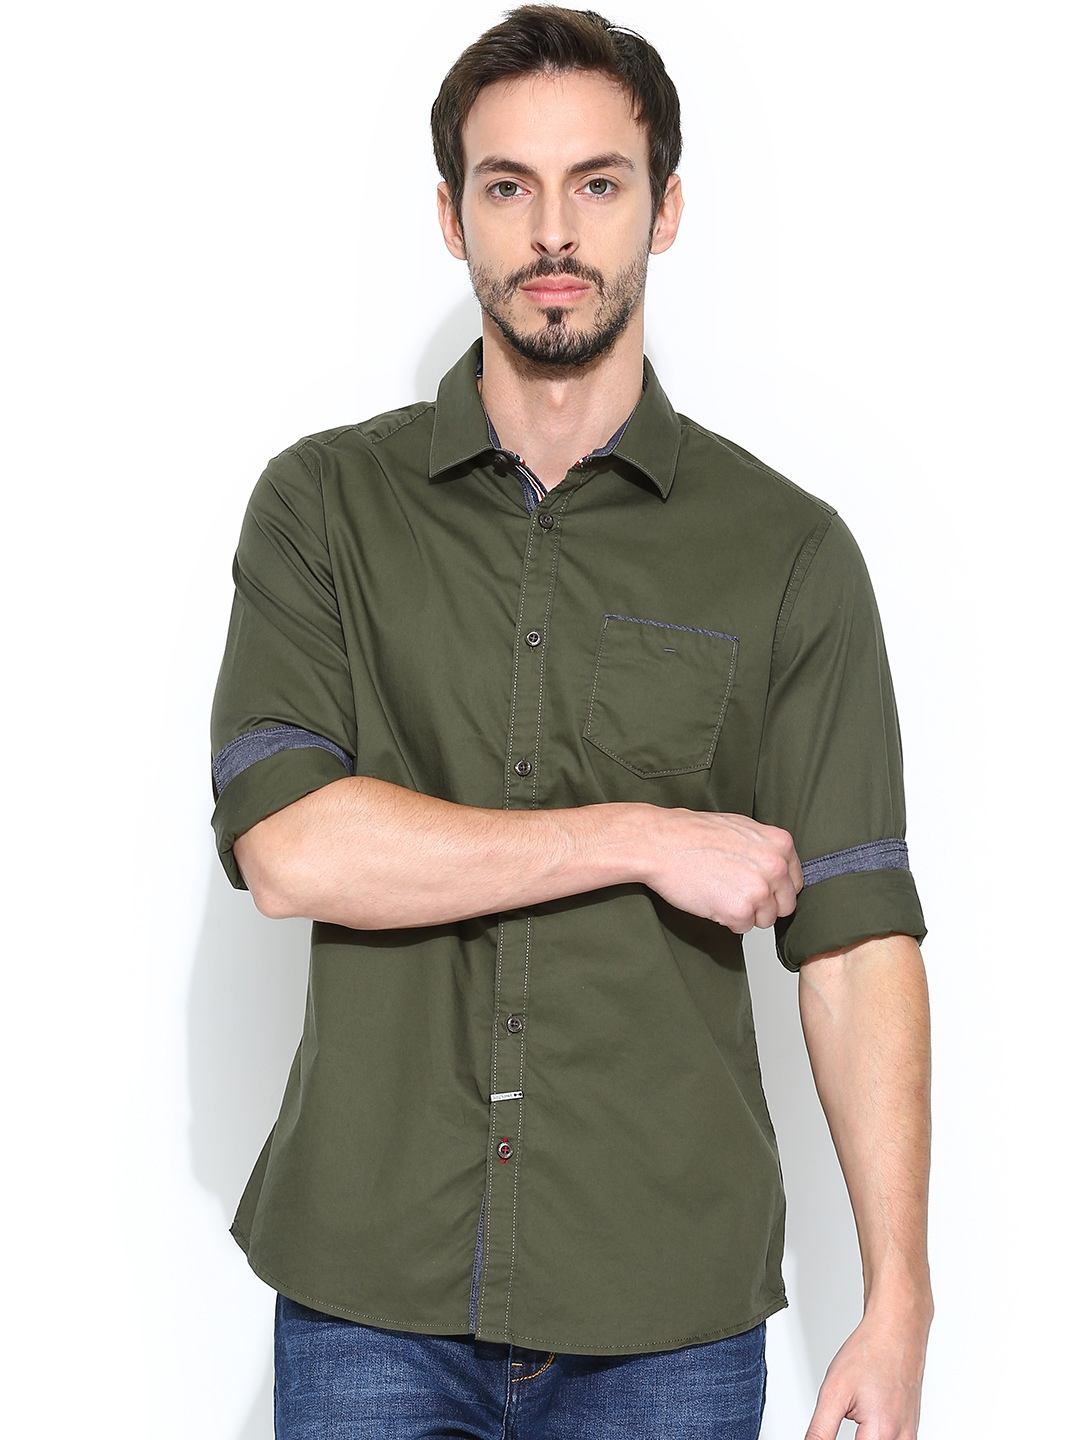 Olive Green Shirts For Men